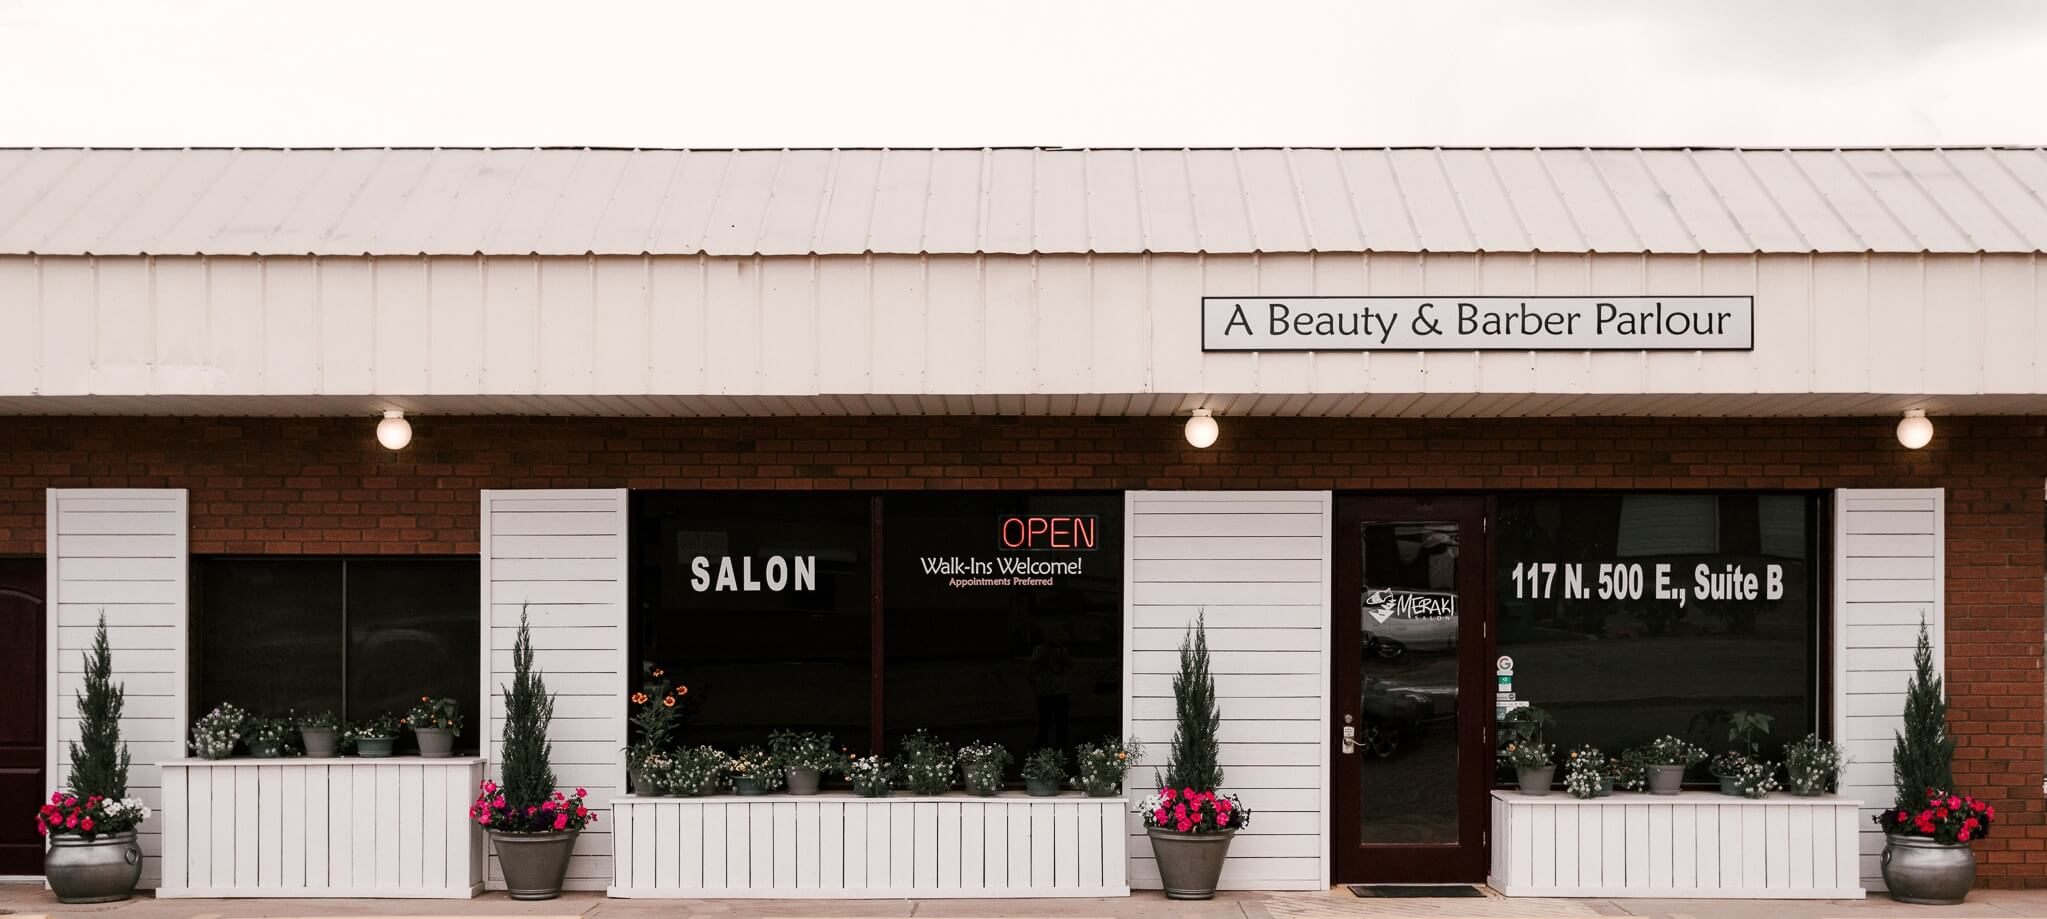 Meraki Salon, a beauty and barber parlour